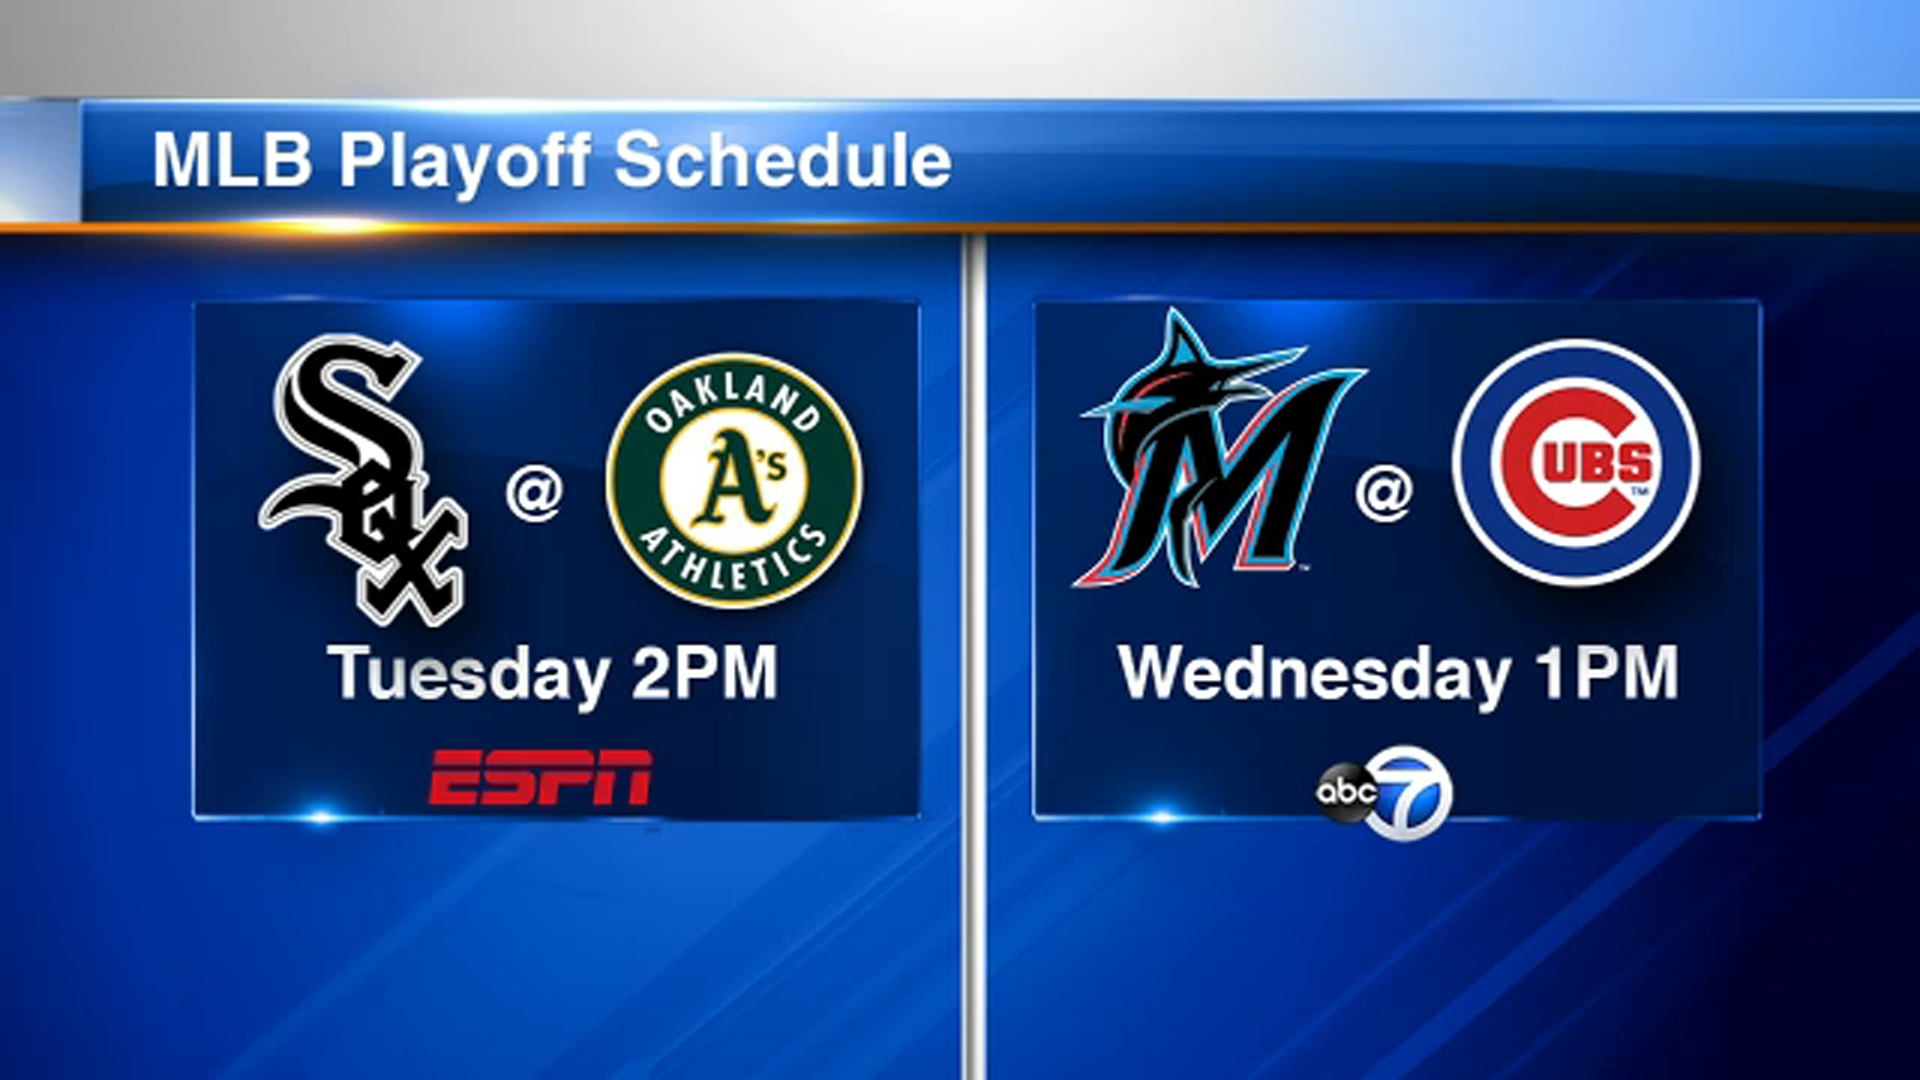 Mlb Playoffs 2020 Schedule Chicago Cubs White Sox Both Make Post Season Abc7 Chicago